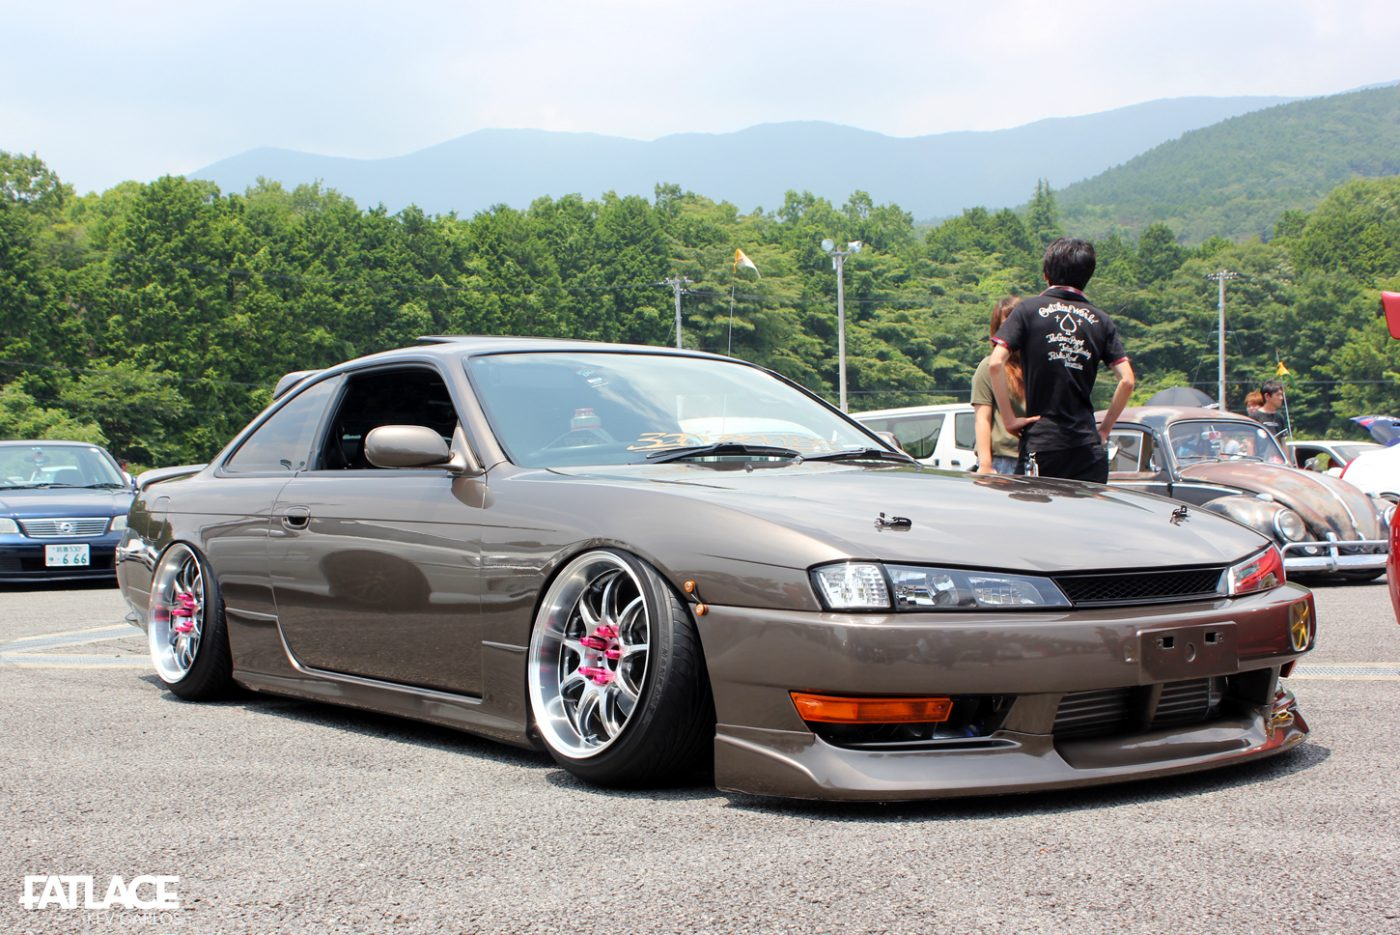 Offset Kings Japan Nissan Style Fatlace Since 1999